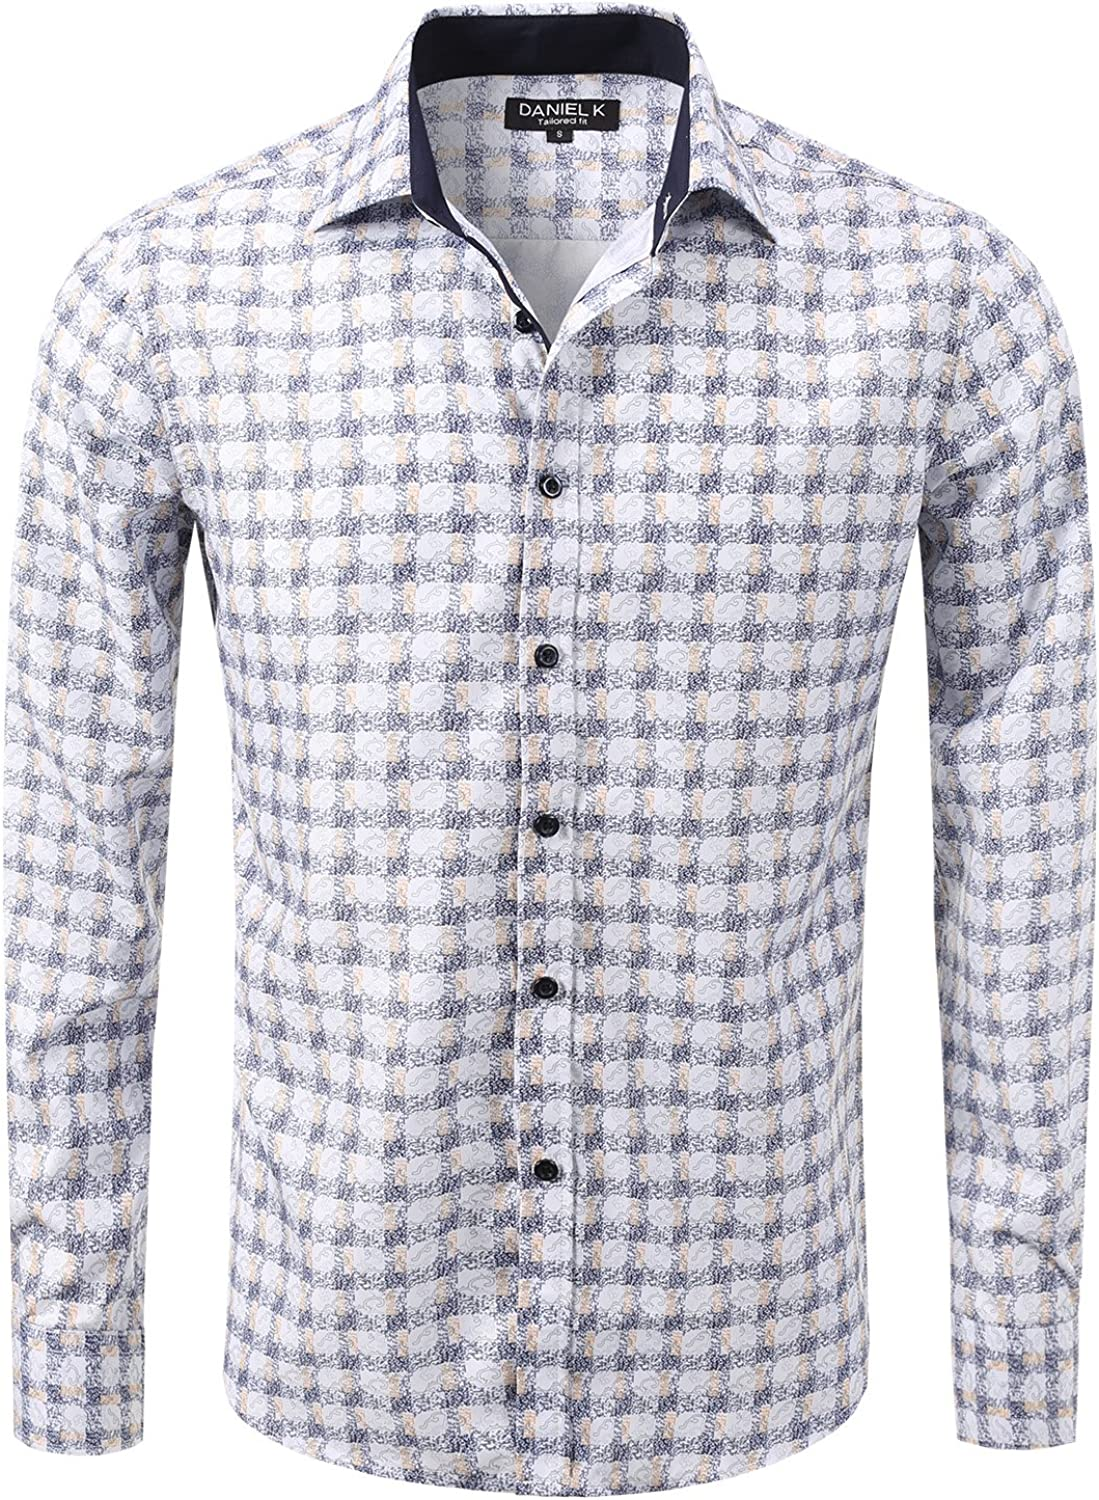 fhnlove Daniel K Max 83% Cheap mail order shopping OFF Men's Spread Print Collar Patterned Oxford Long